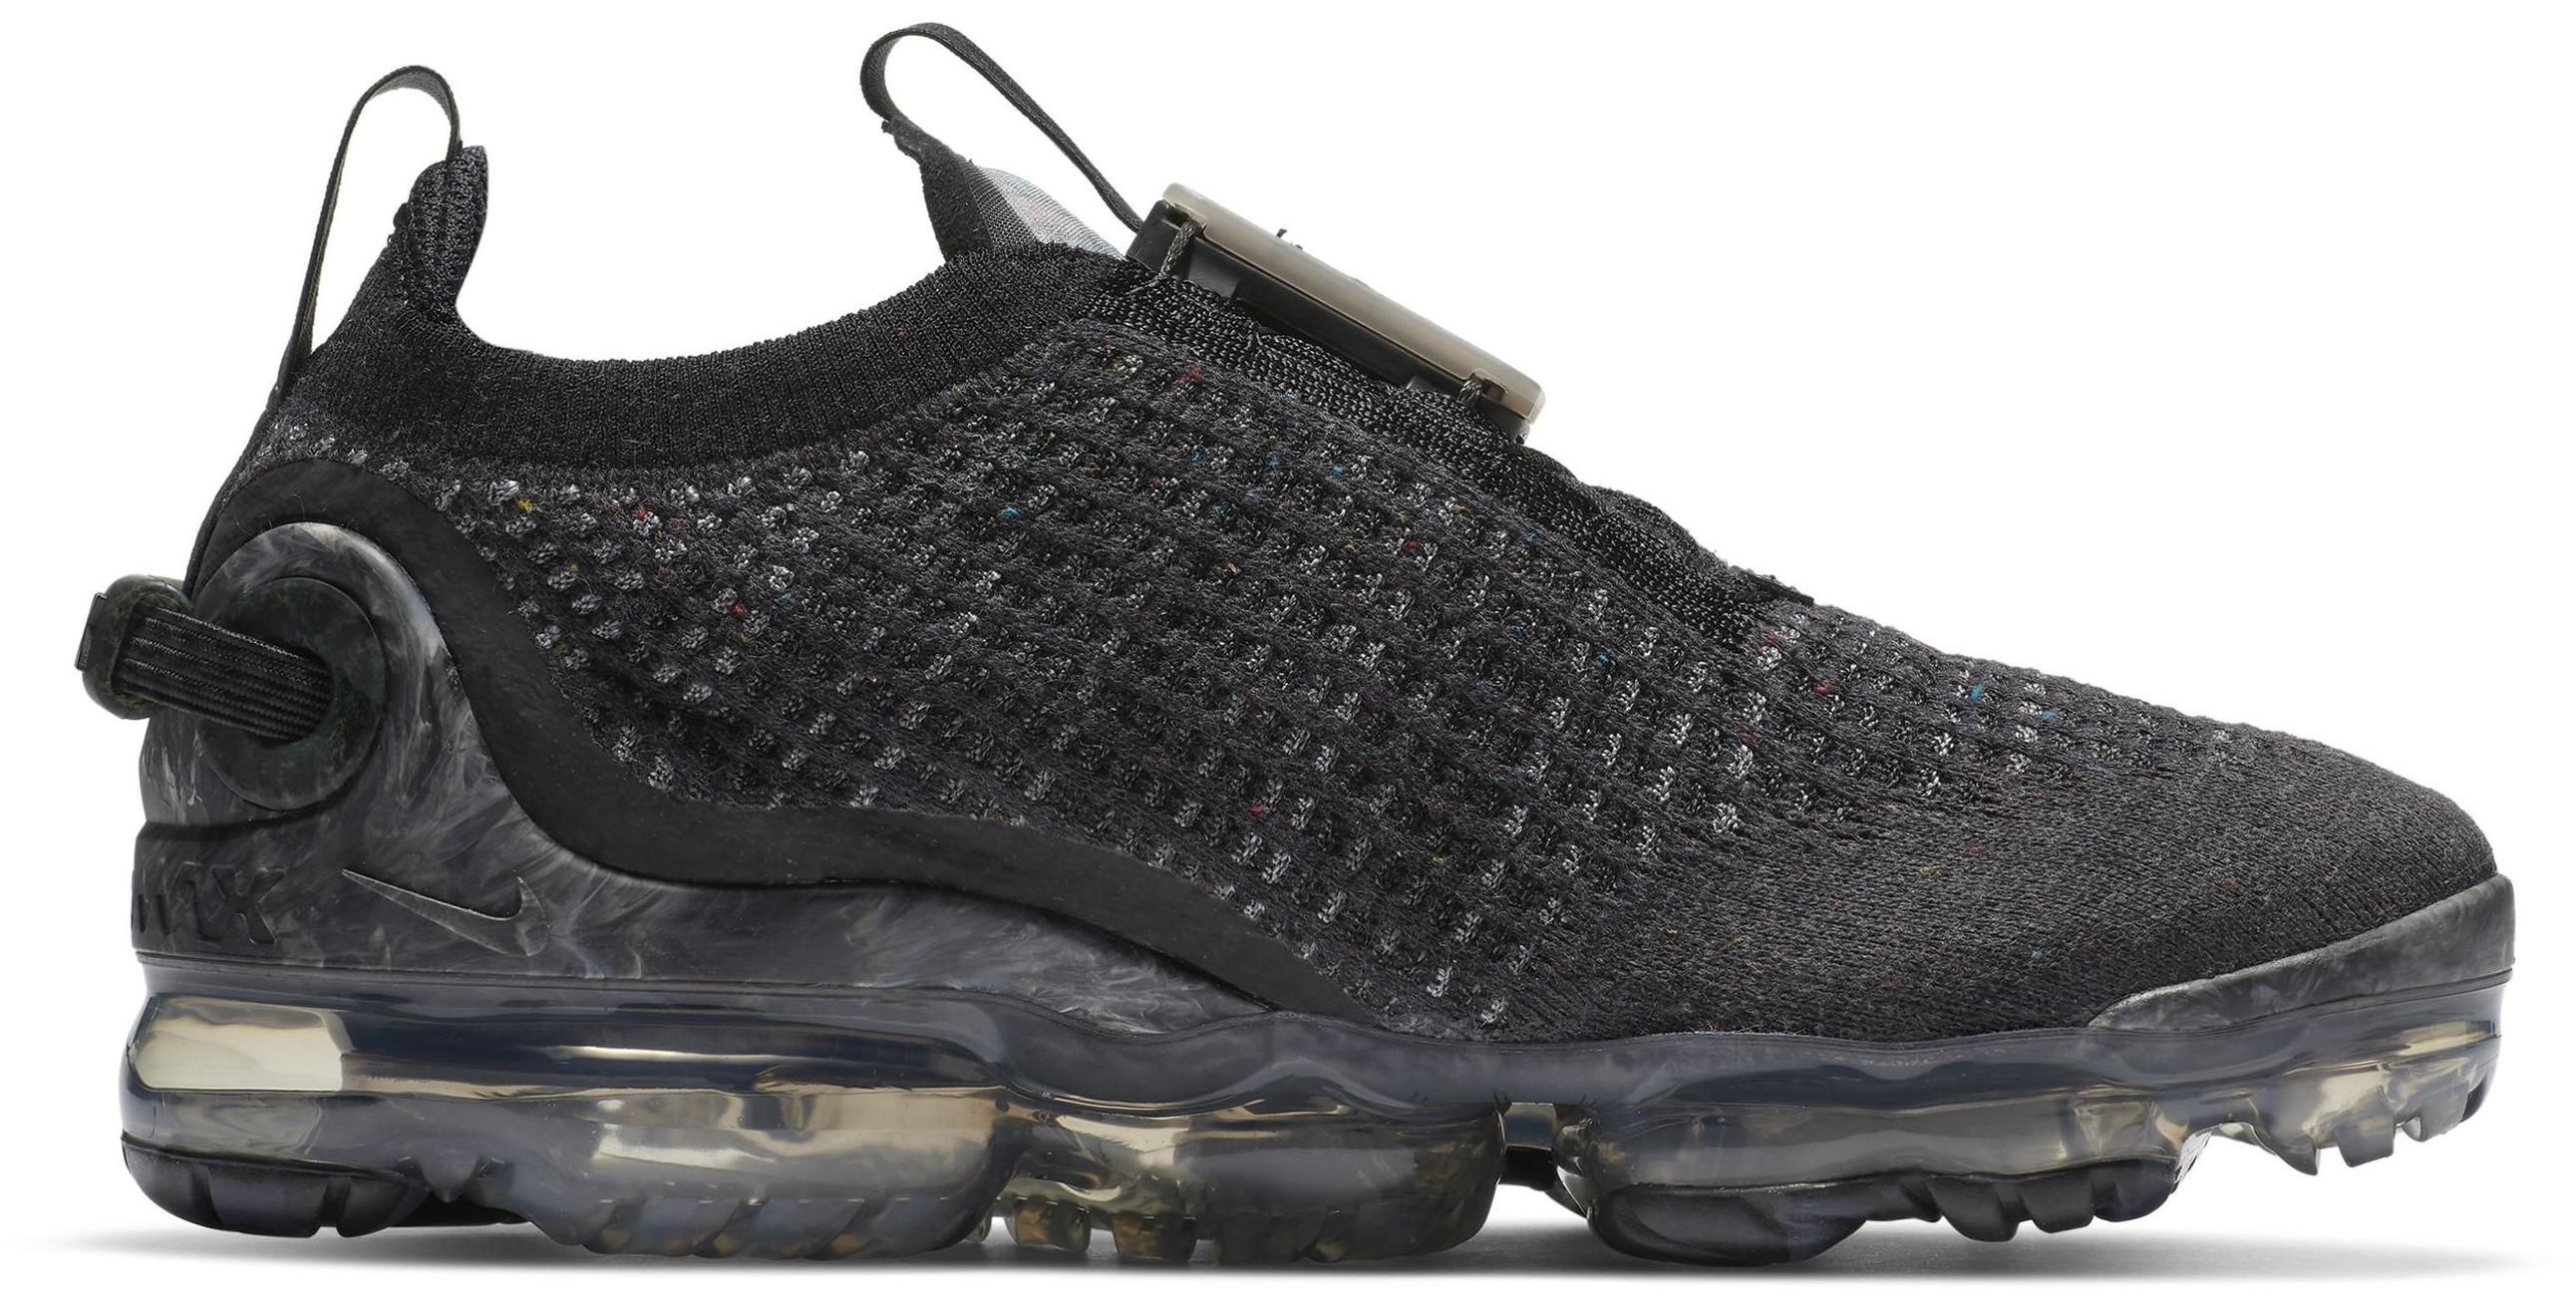 Nike Air VaporMax 2020 FK Black/Black/Dark Grey